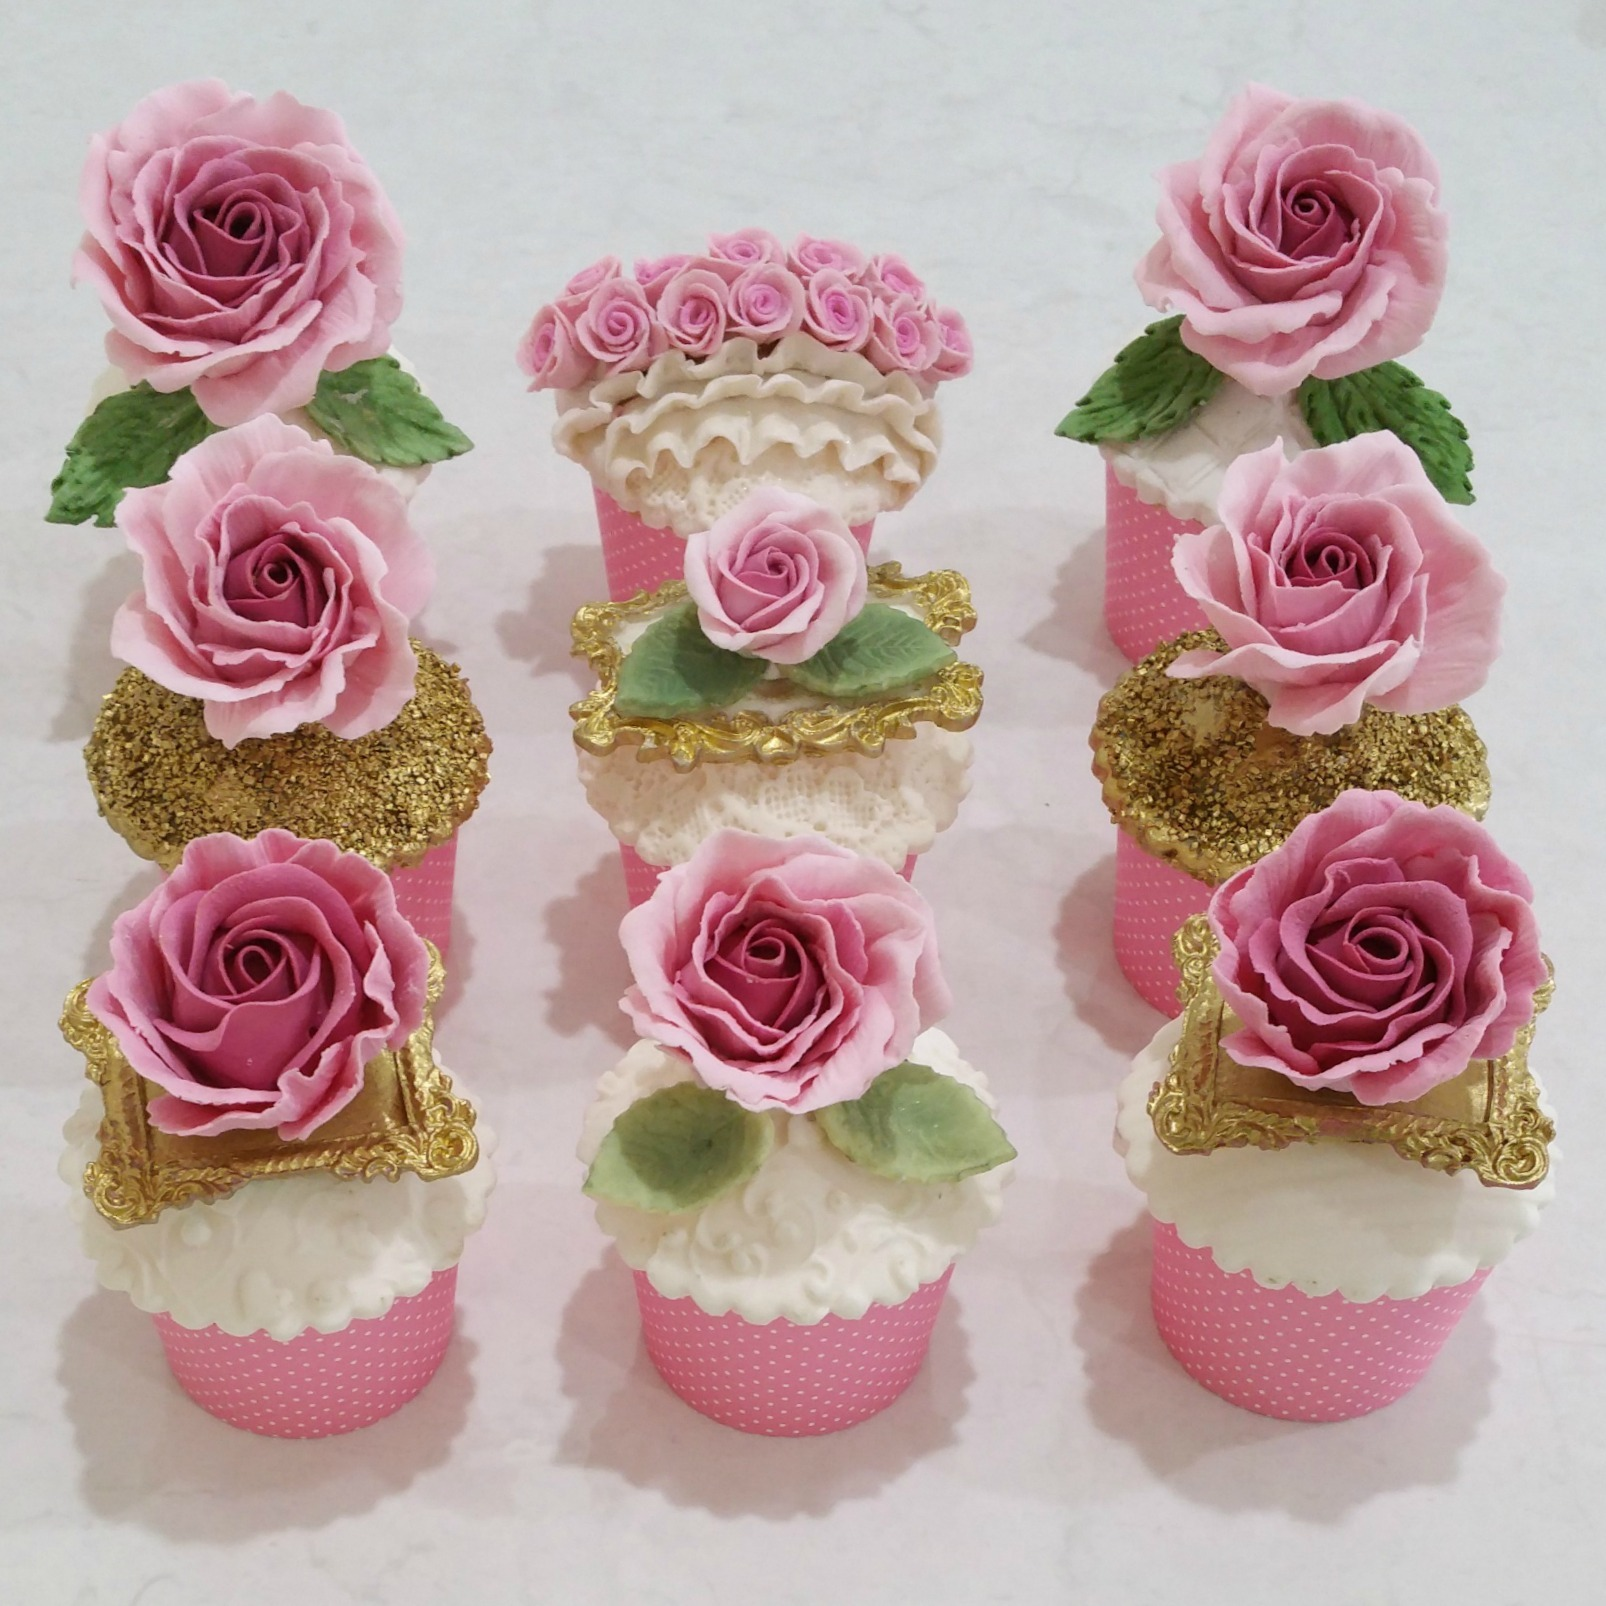 Pink and White Rose Cupcakes